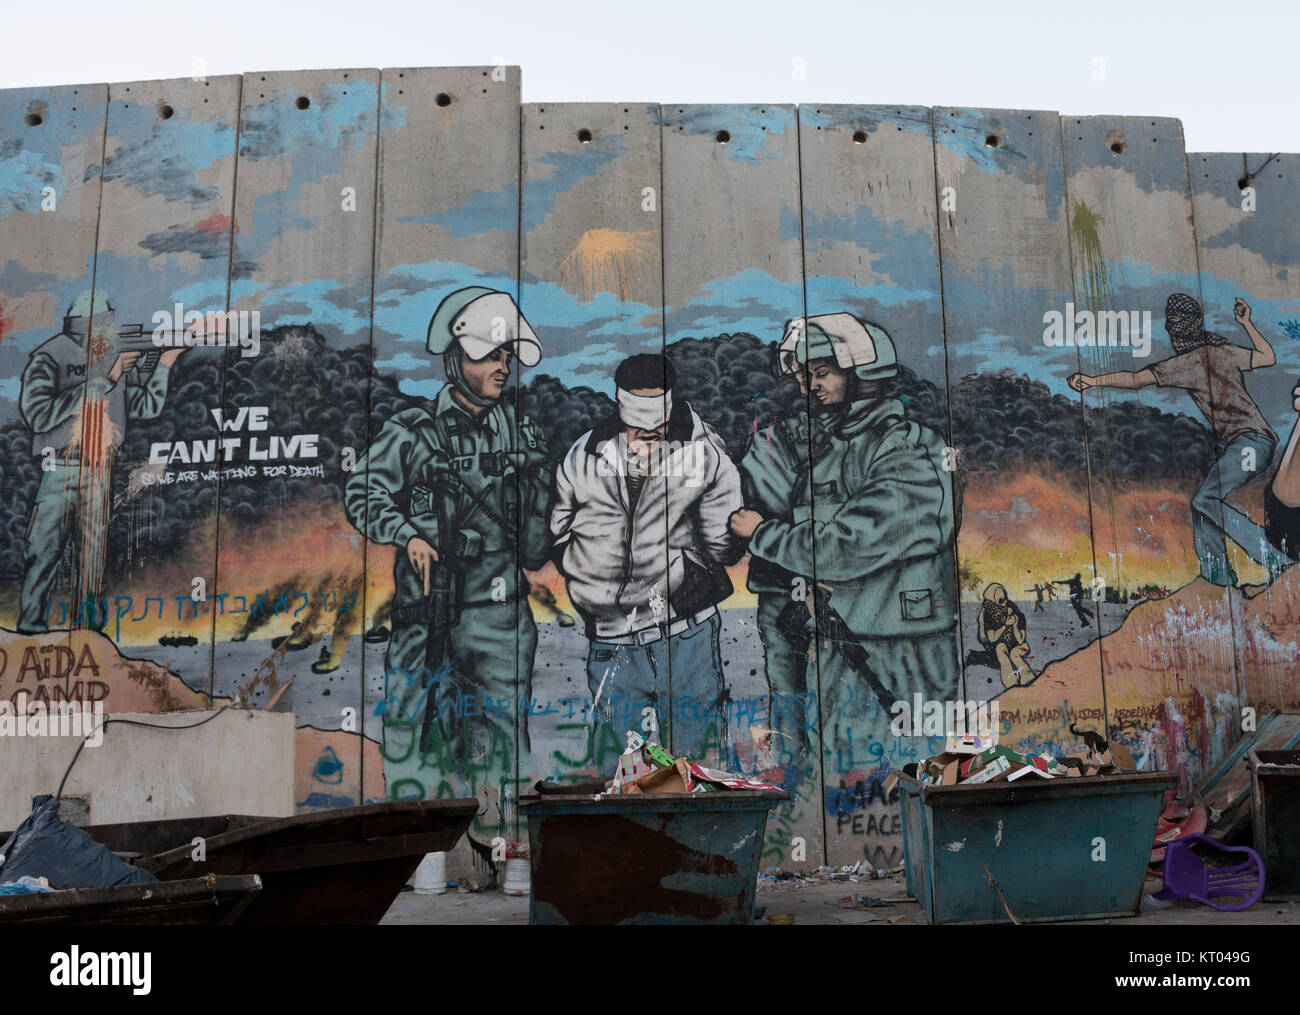 The West Bank Wall, State of Palestine - Stock Image